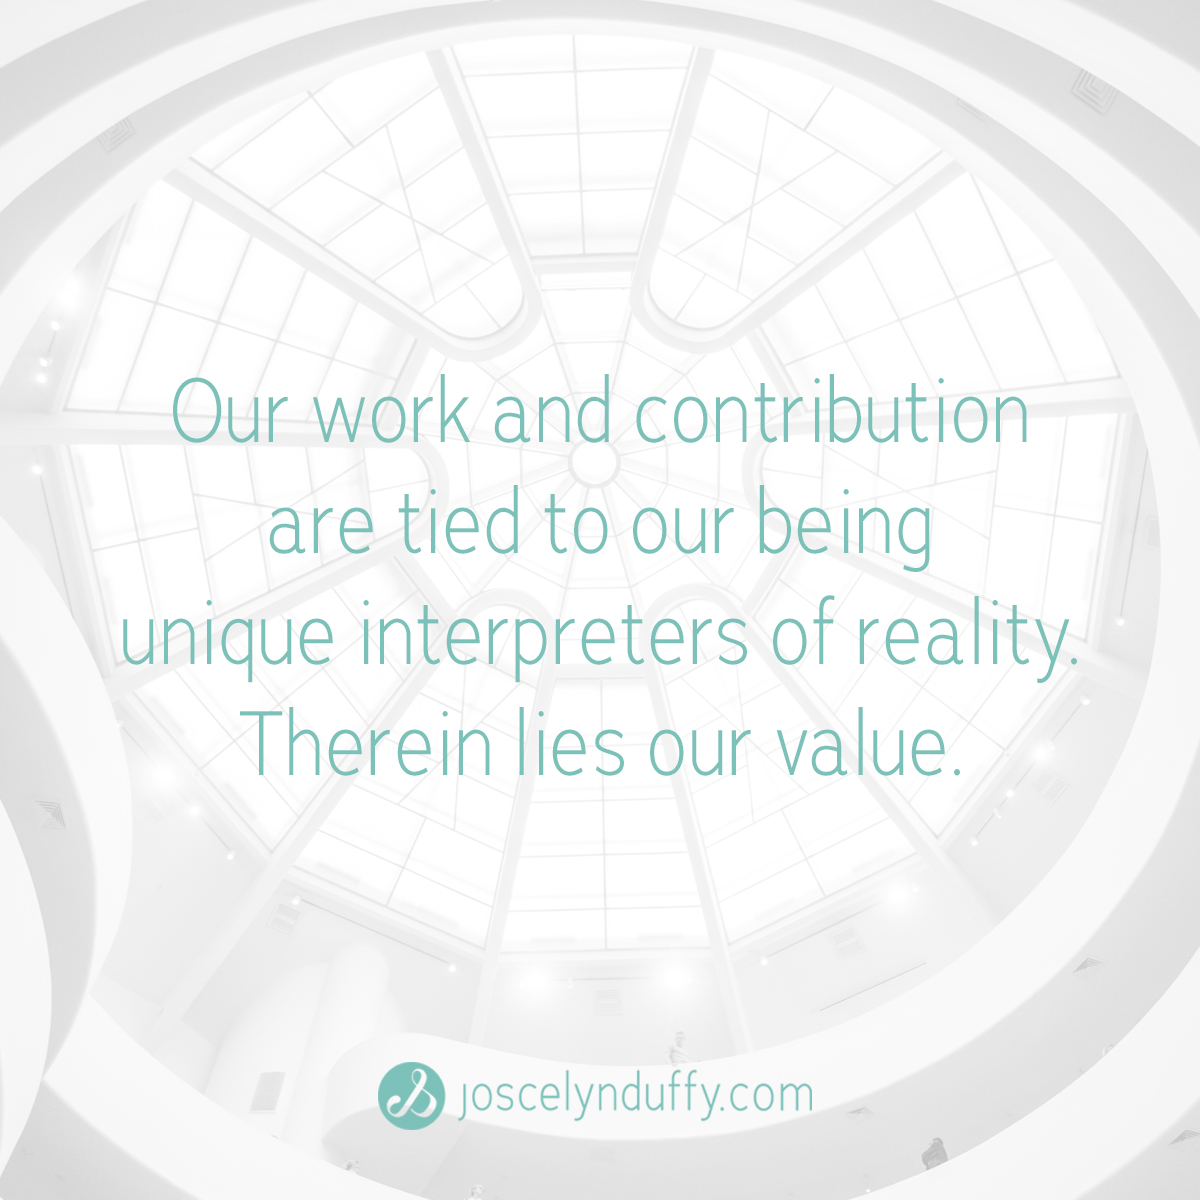 Joscelyn Duffy_quote_Our voice is tied to our being unique interpreters of reality_Mar20